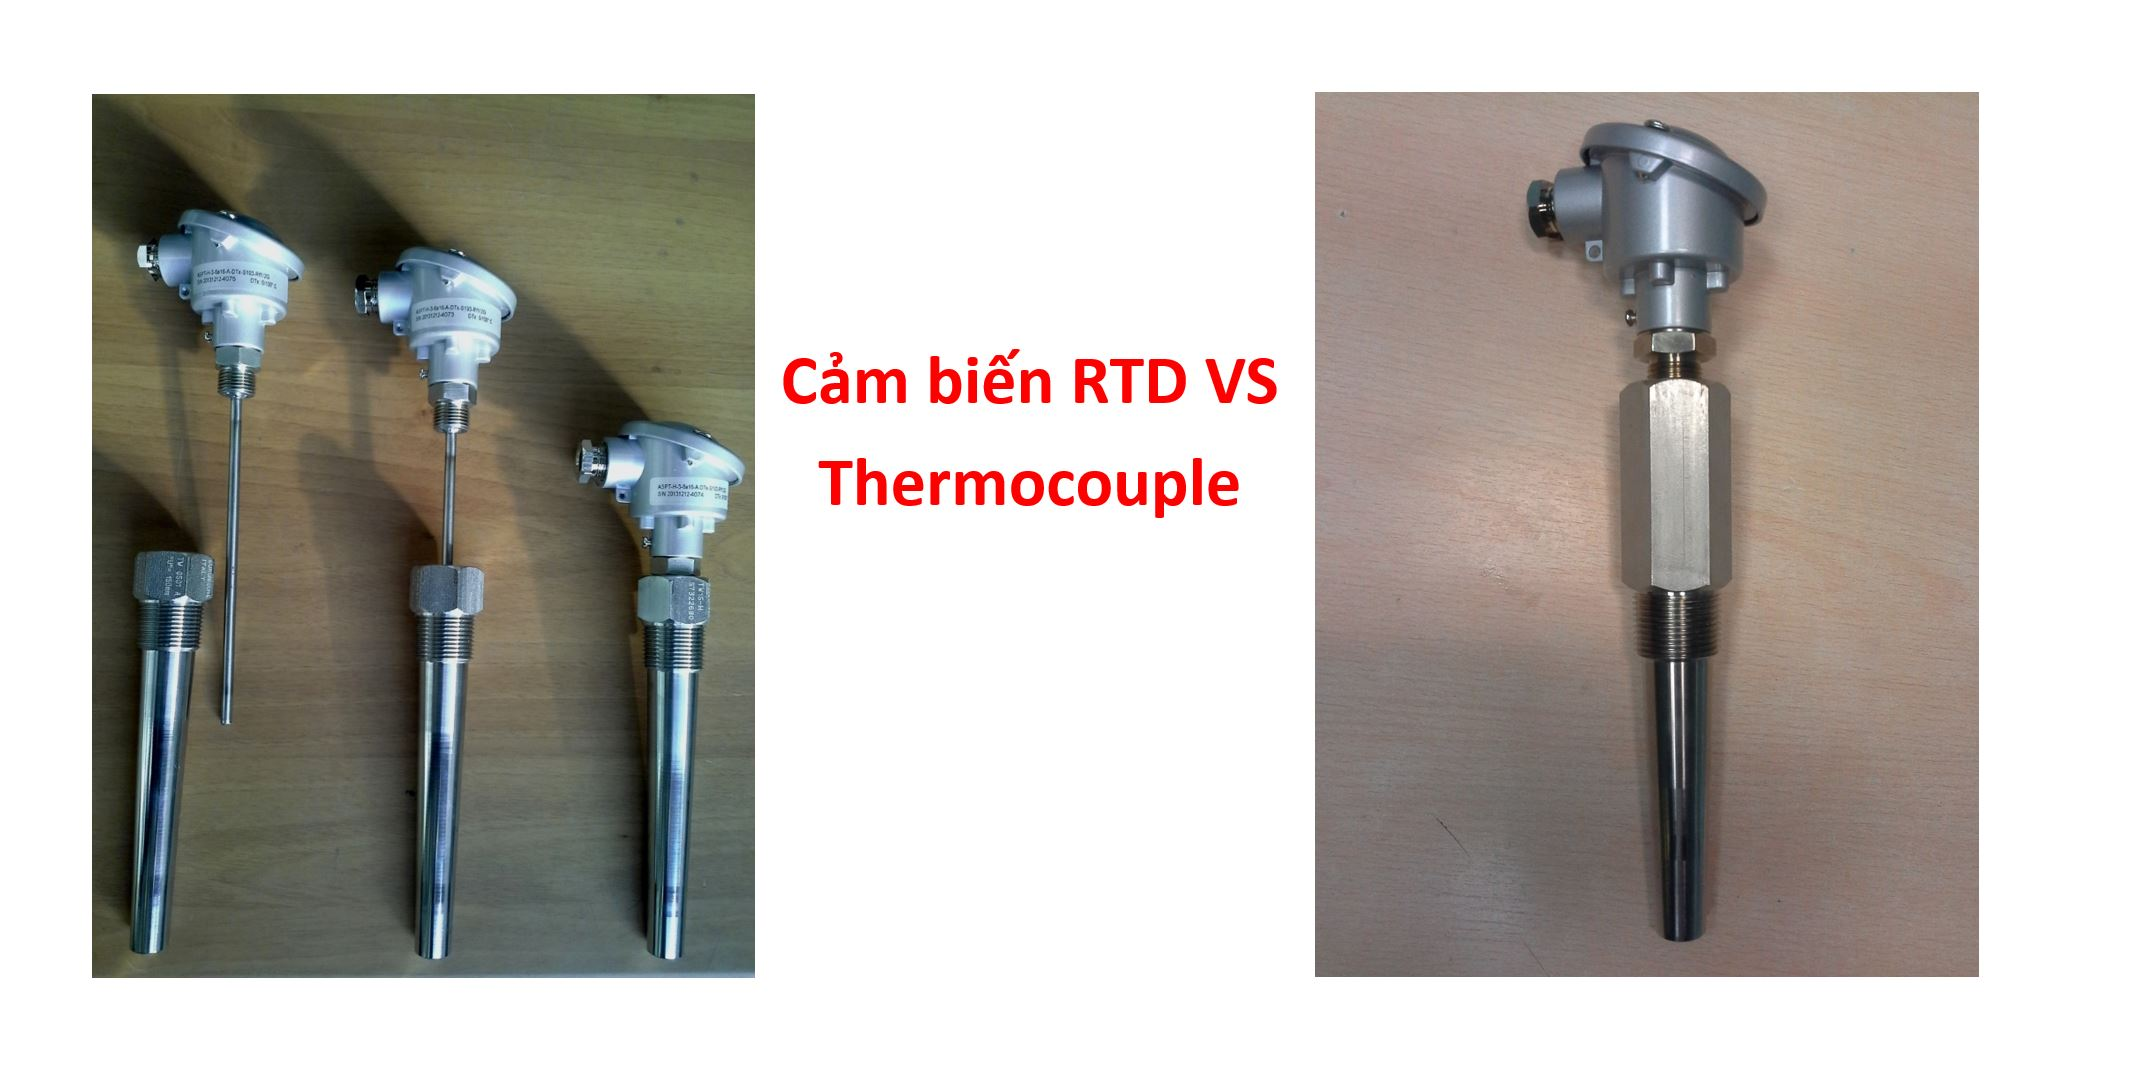 RTD vs Thermocouple